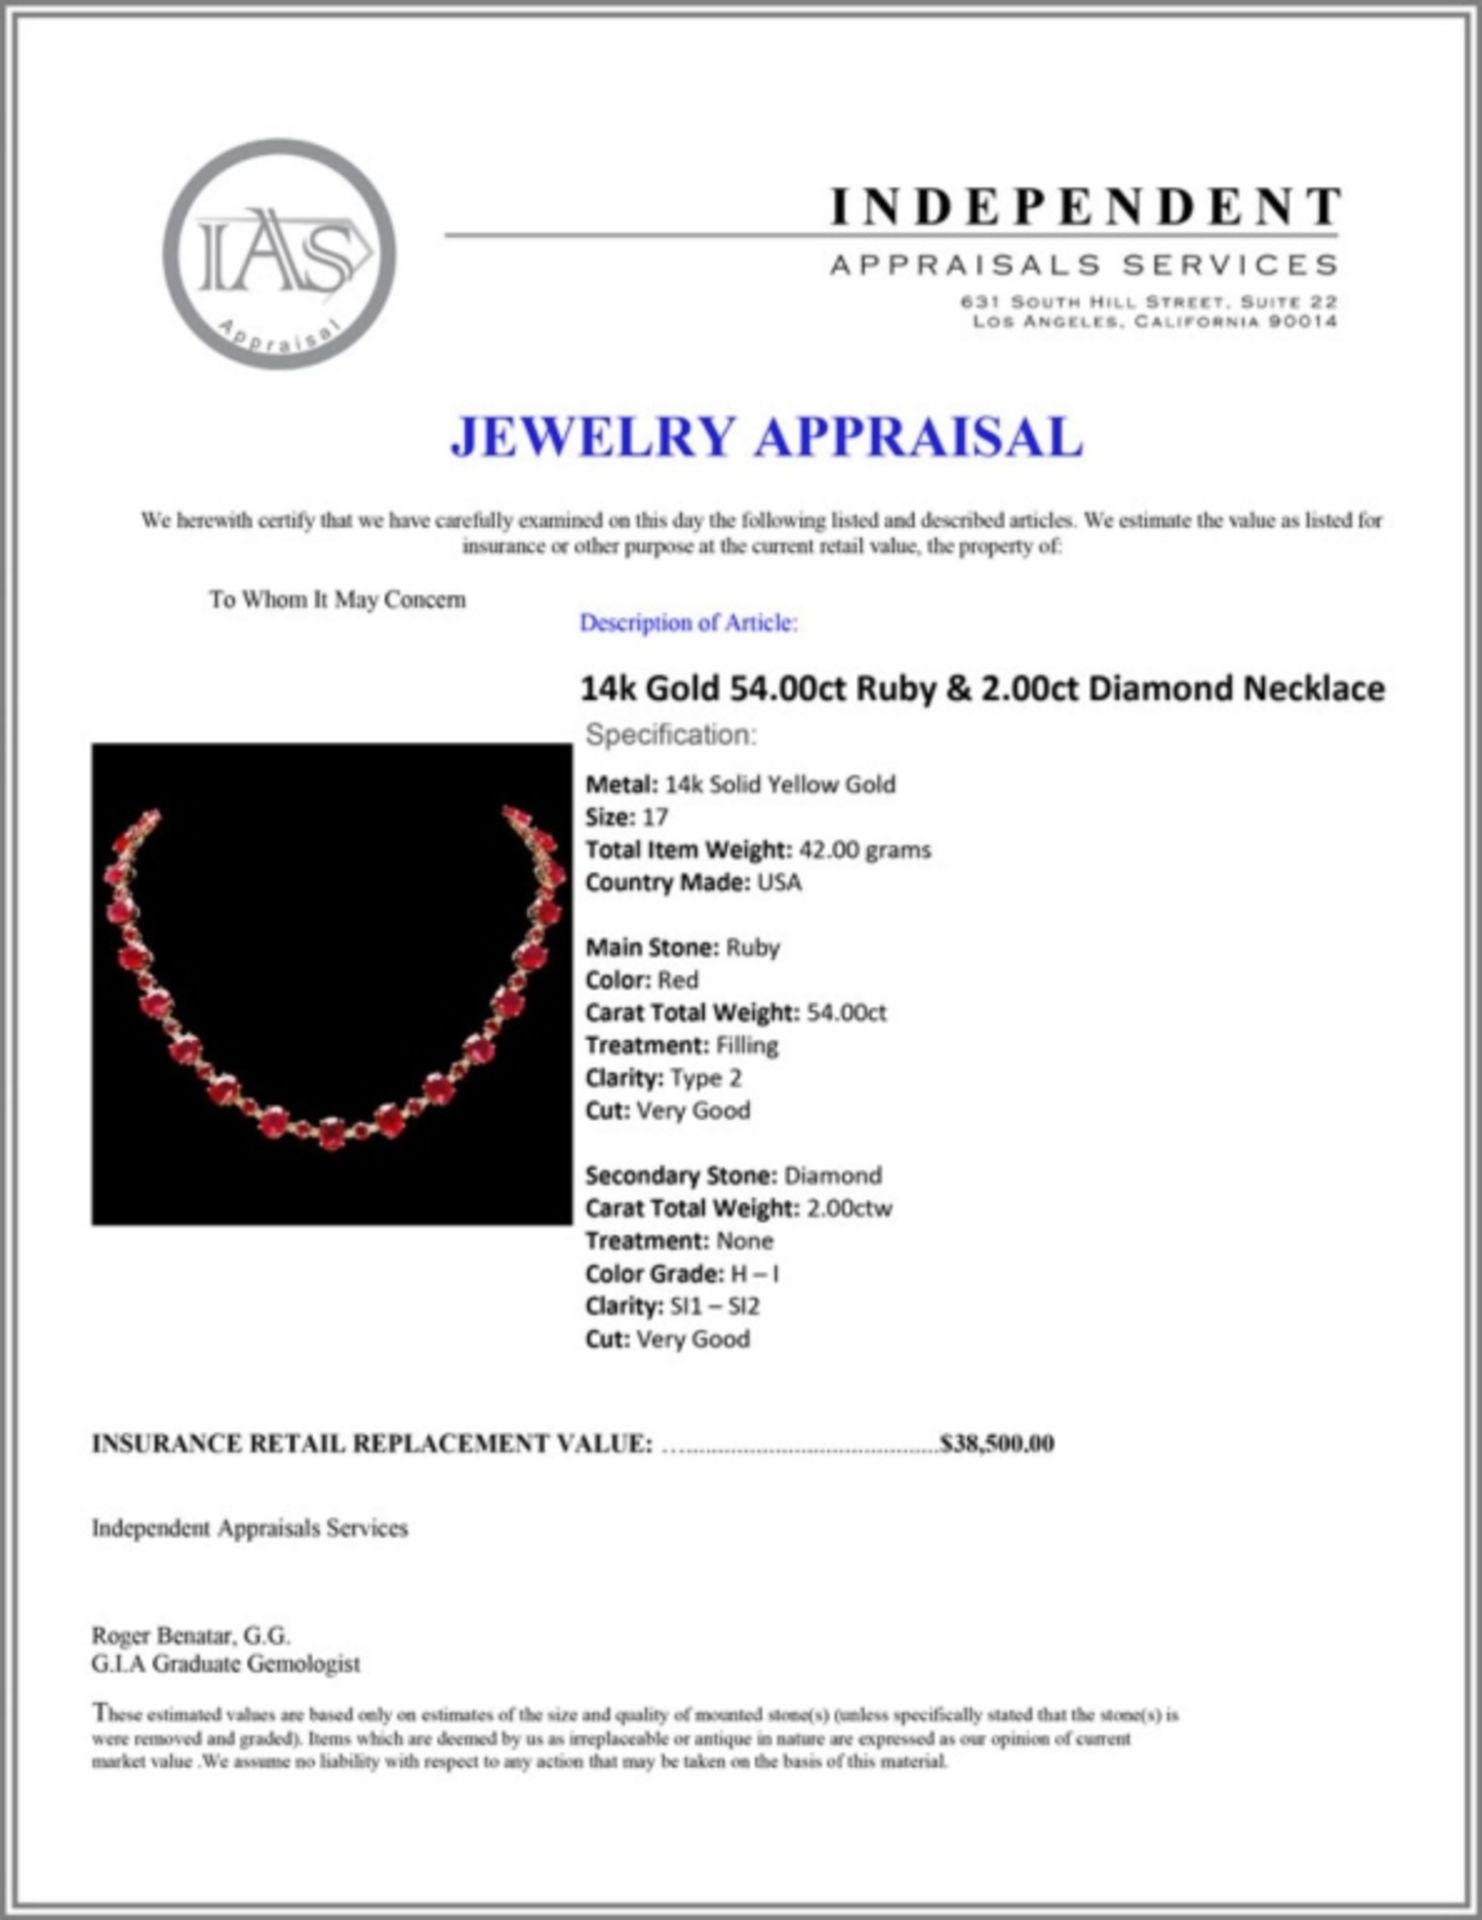 `14k Gold 54.00ct Ruby & 2.00ct Diamond Necklace - Image 5 of 5